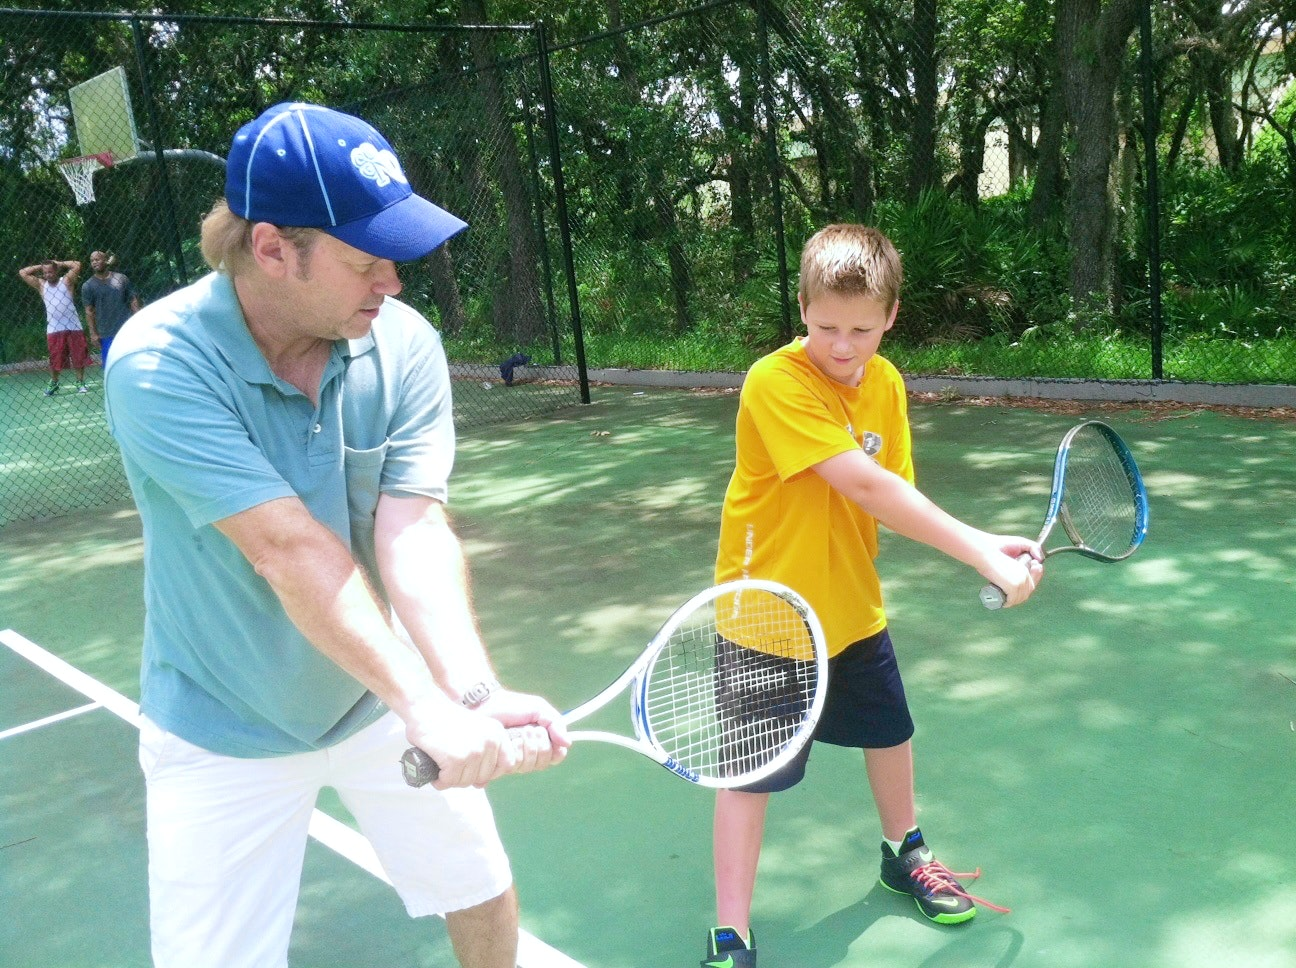 Tom O. teaches tennis lessons in Celebration, FL